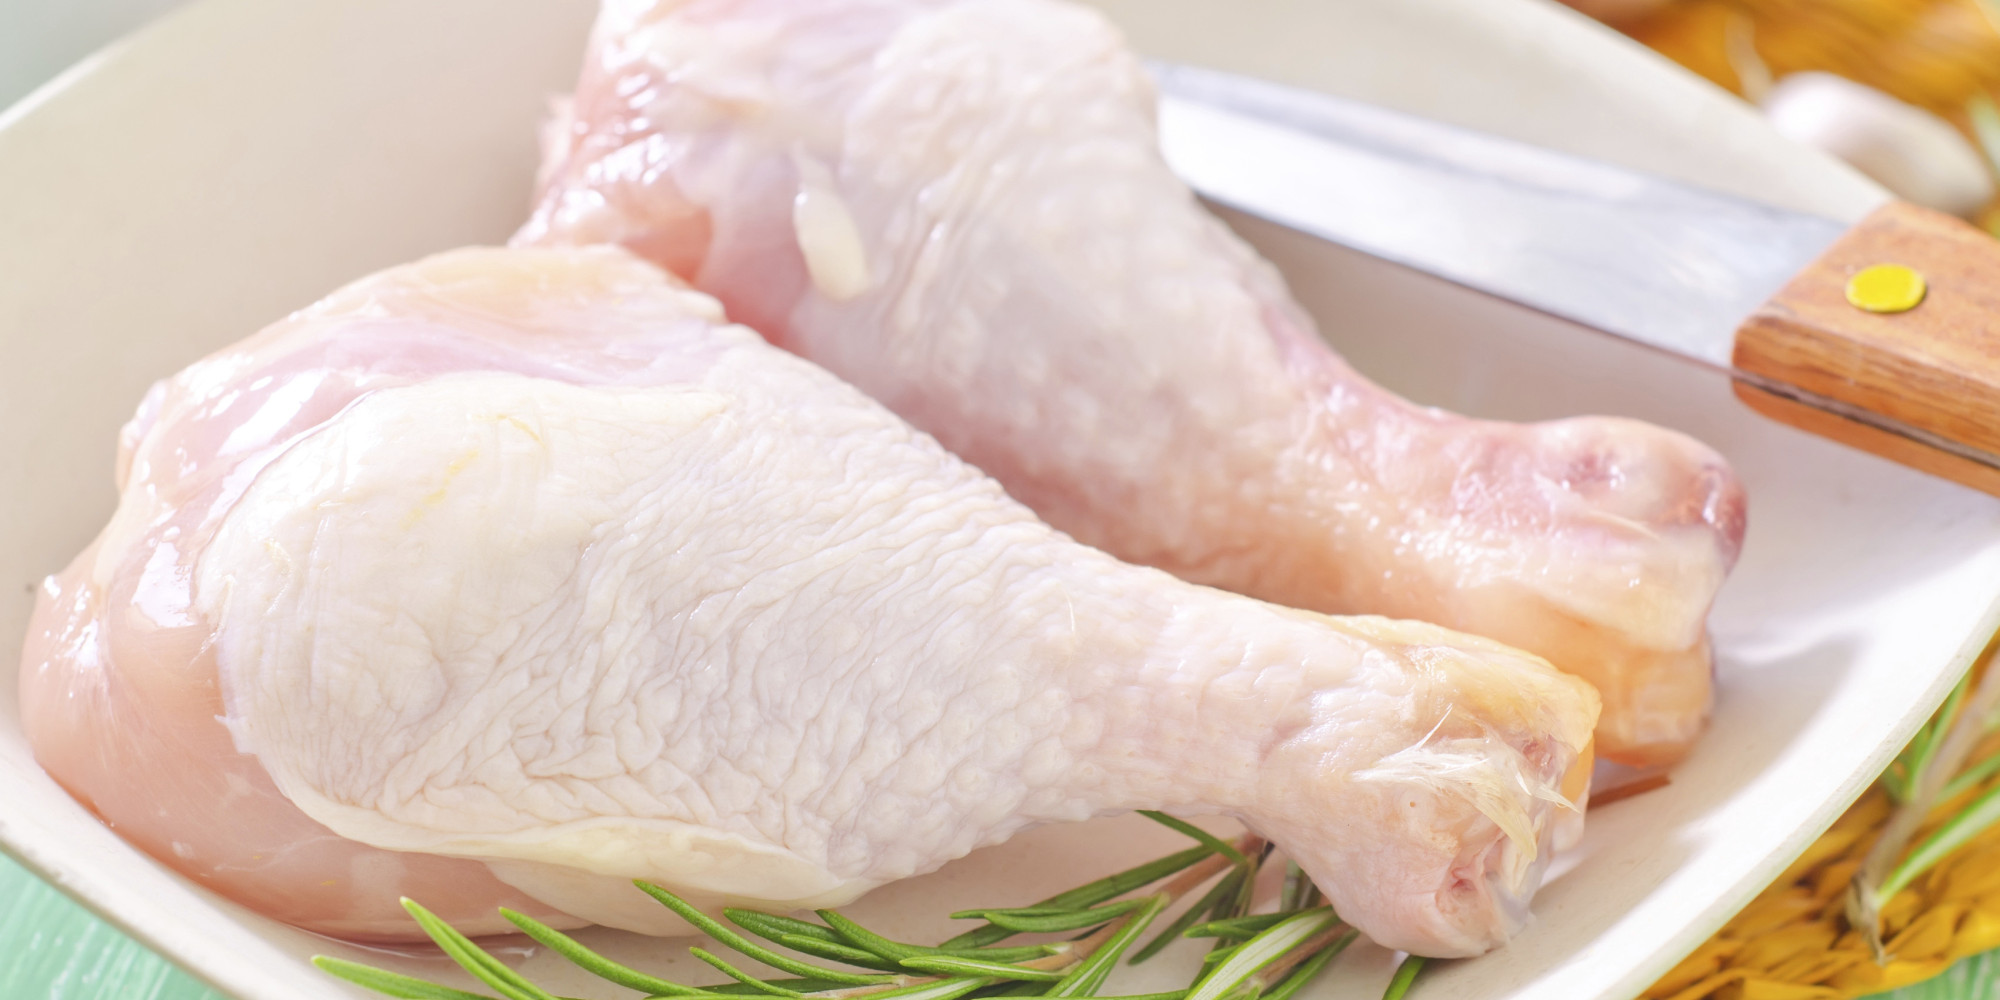 How much is frozen chicken drumstick and how much is frozen